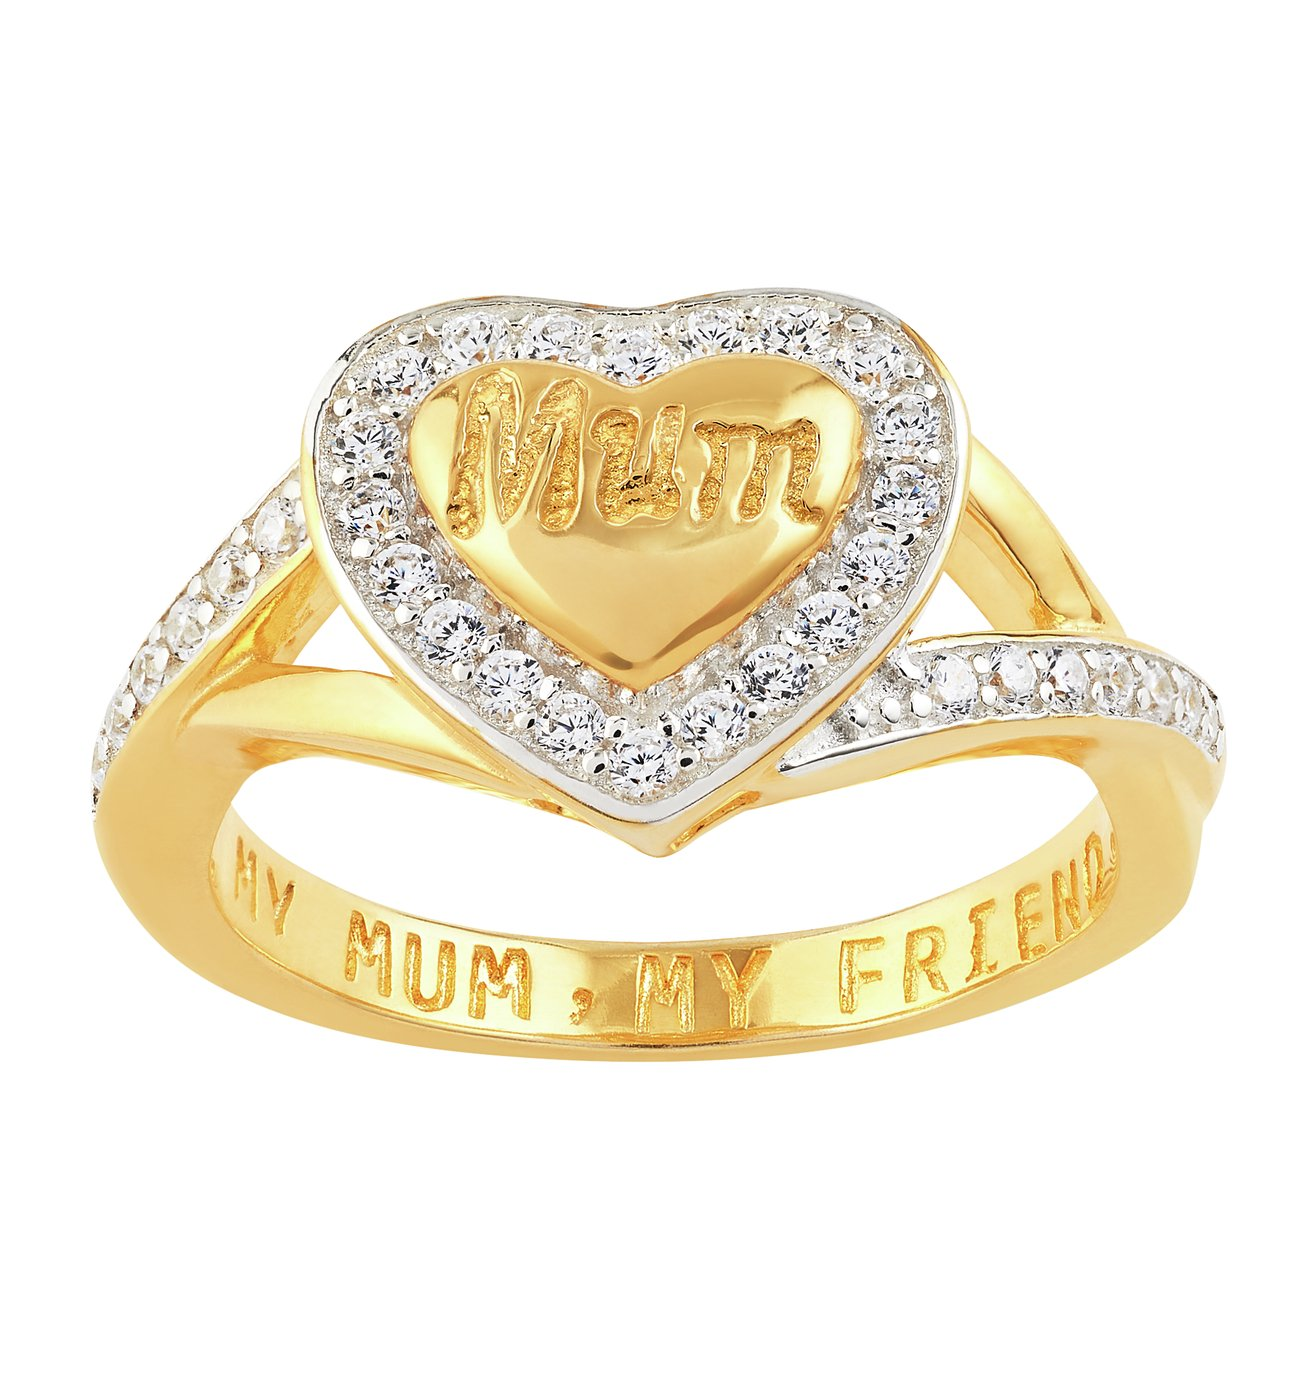 Image of 9 Carat Gold - Plated Sterling Silver - 'My Mum My Friend' Ring